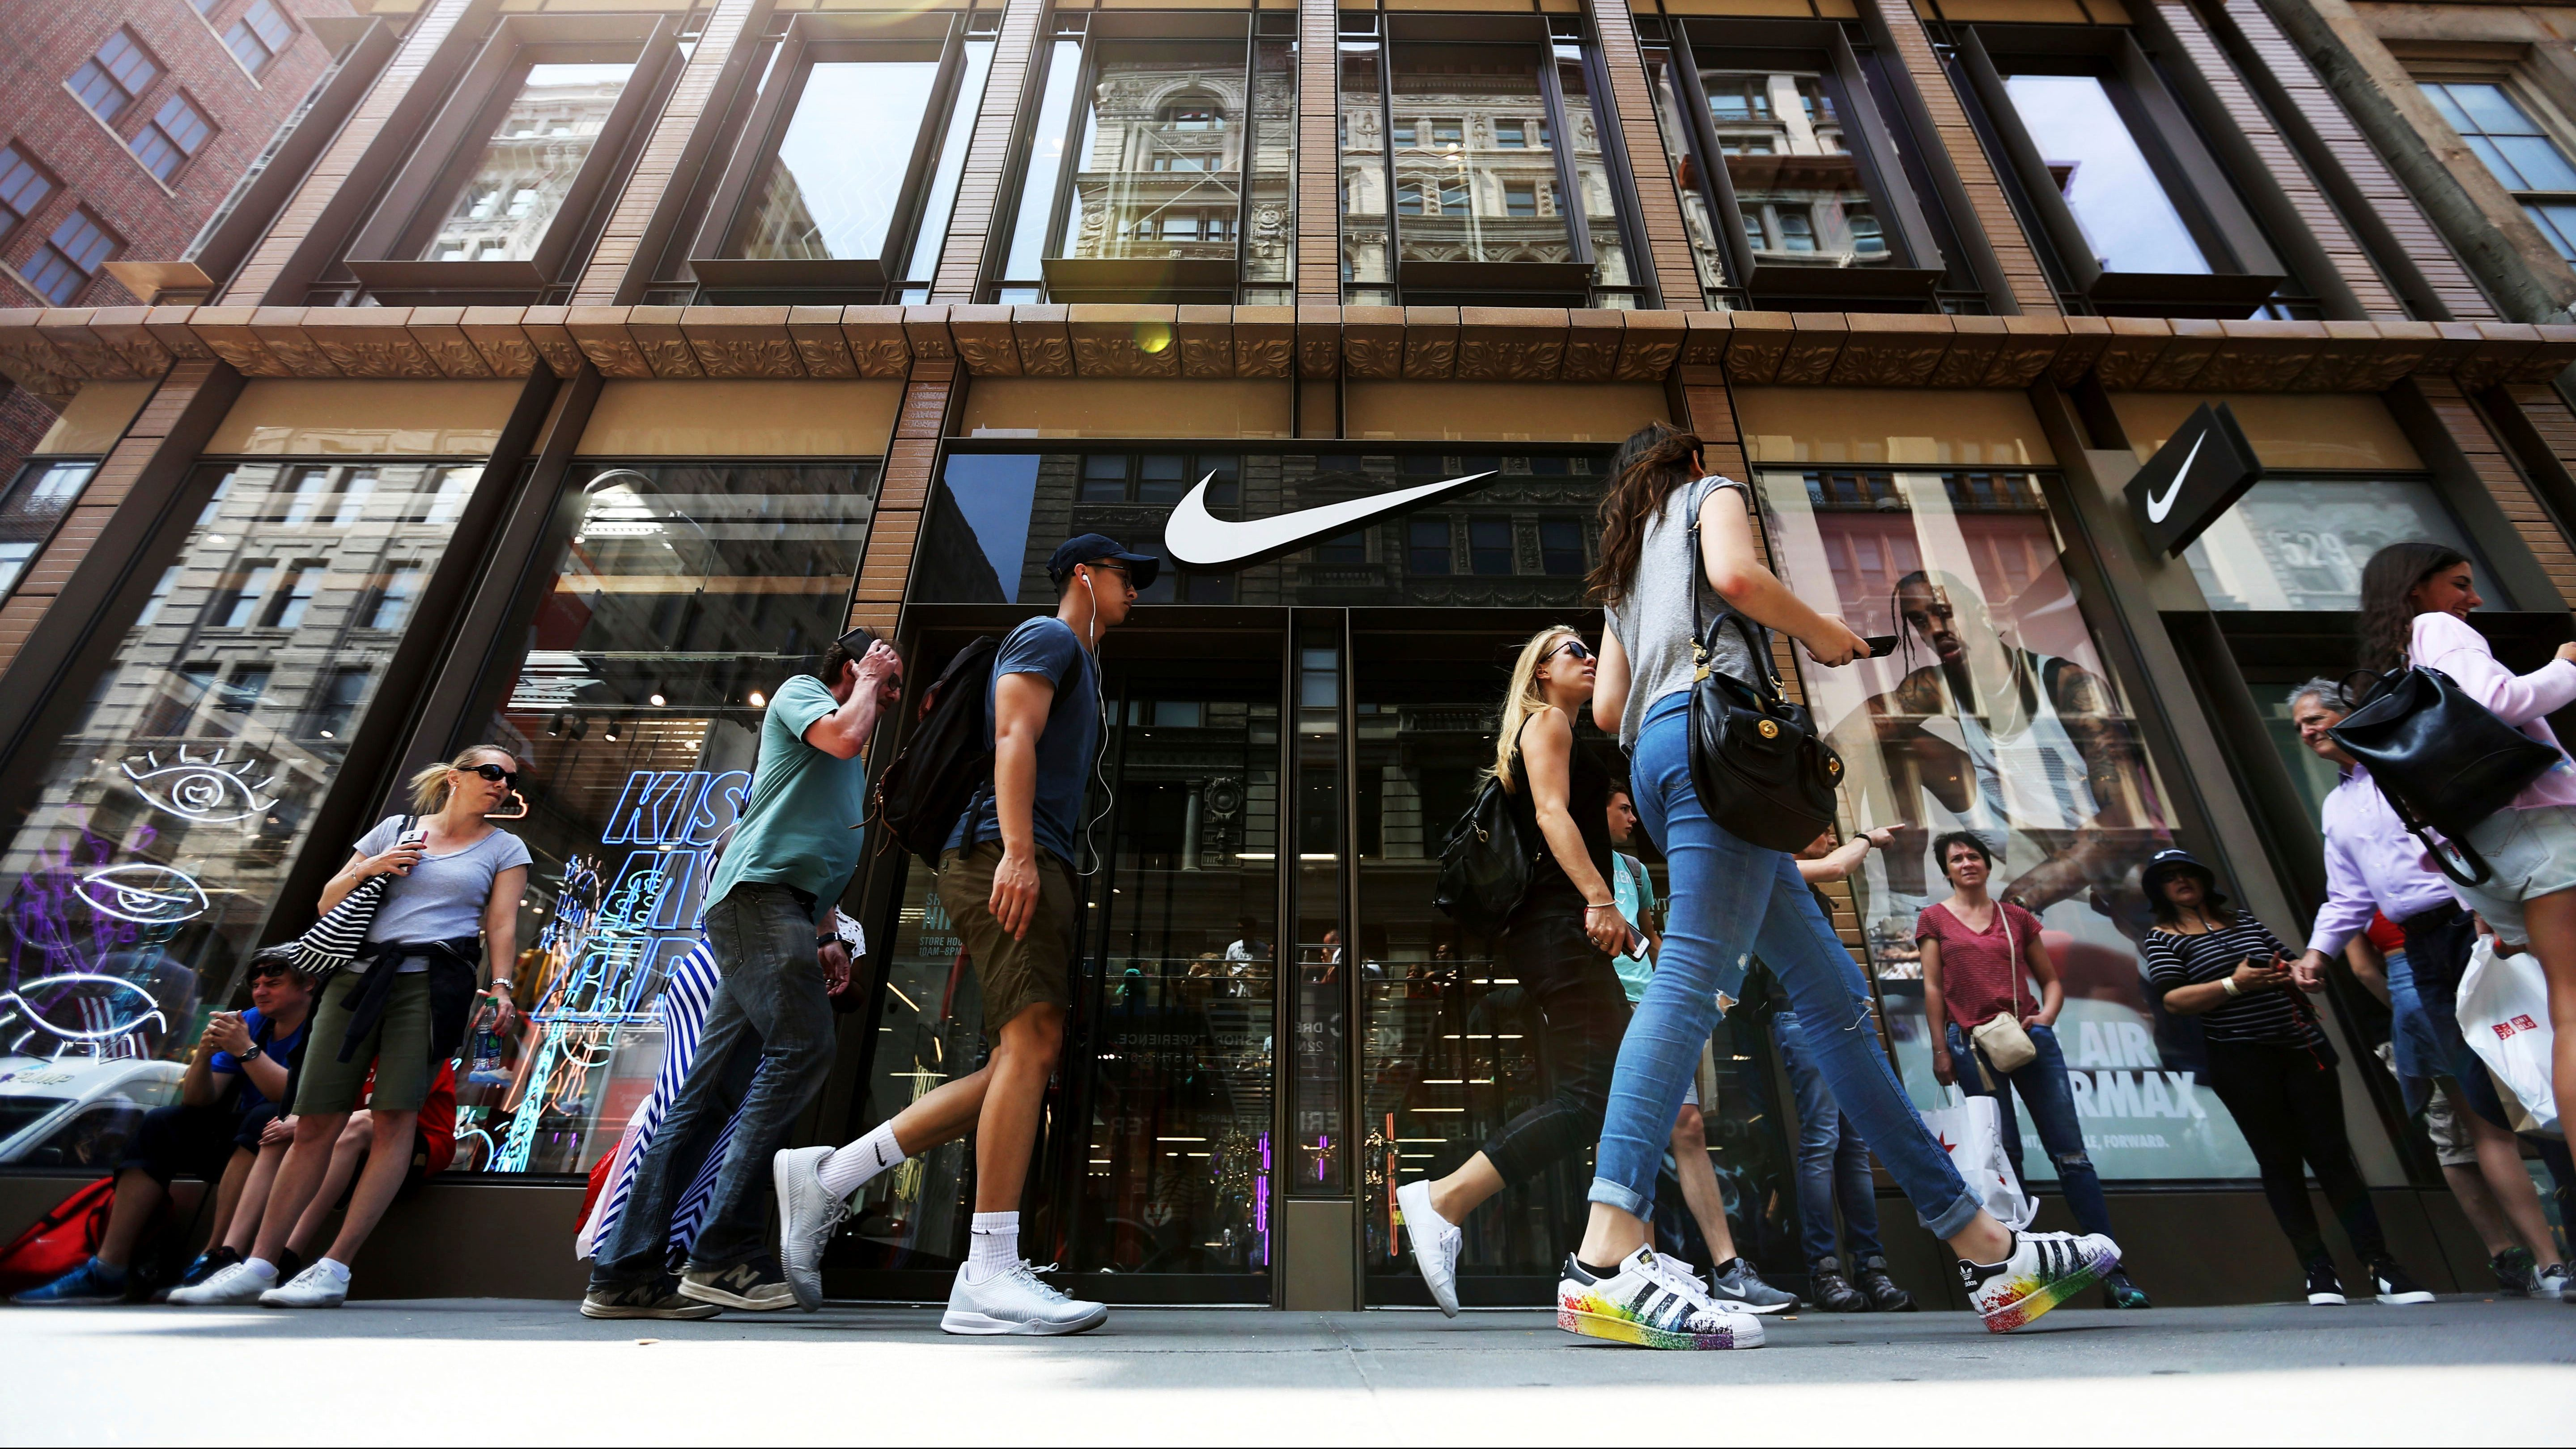 Nike is losing popularity to Adidas and Vans among teens